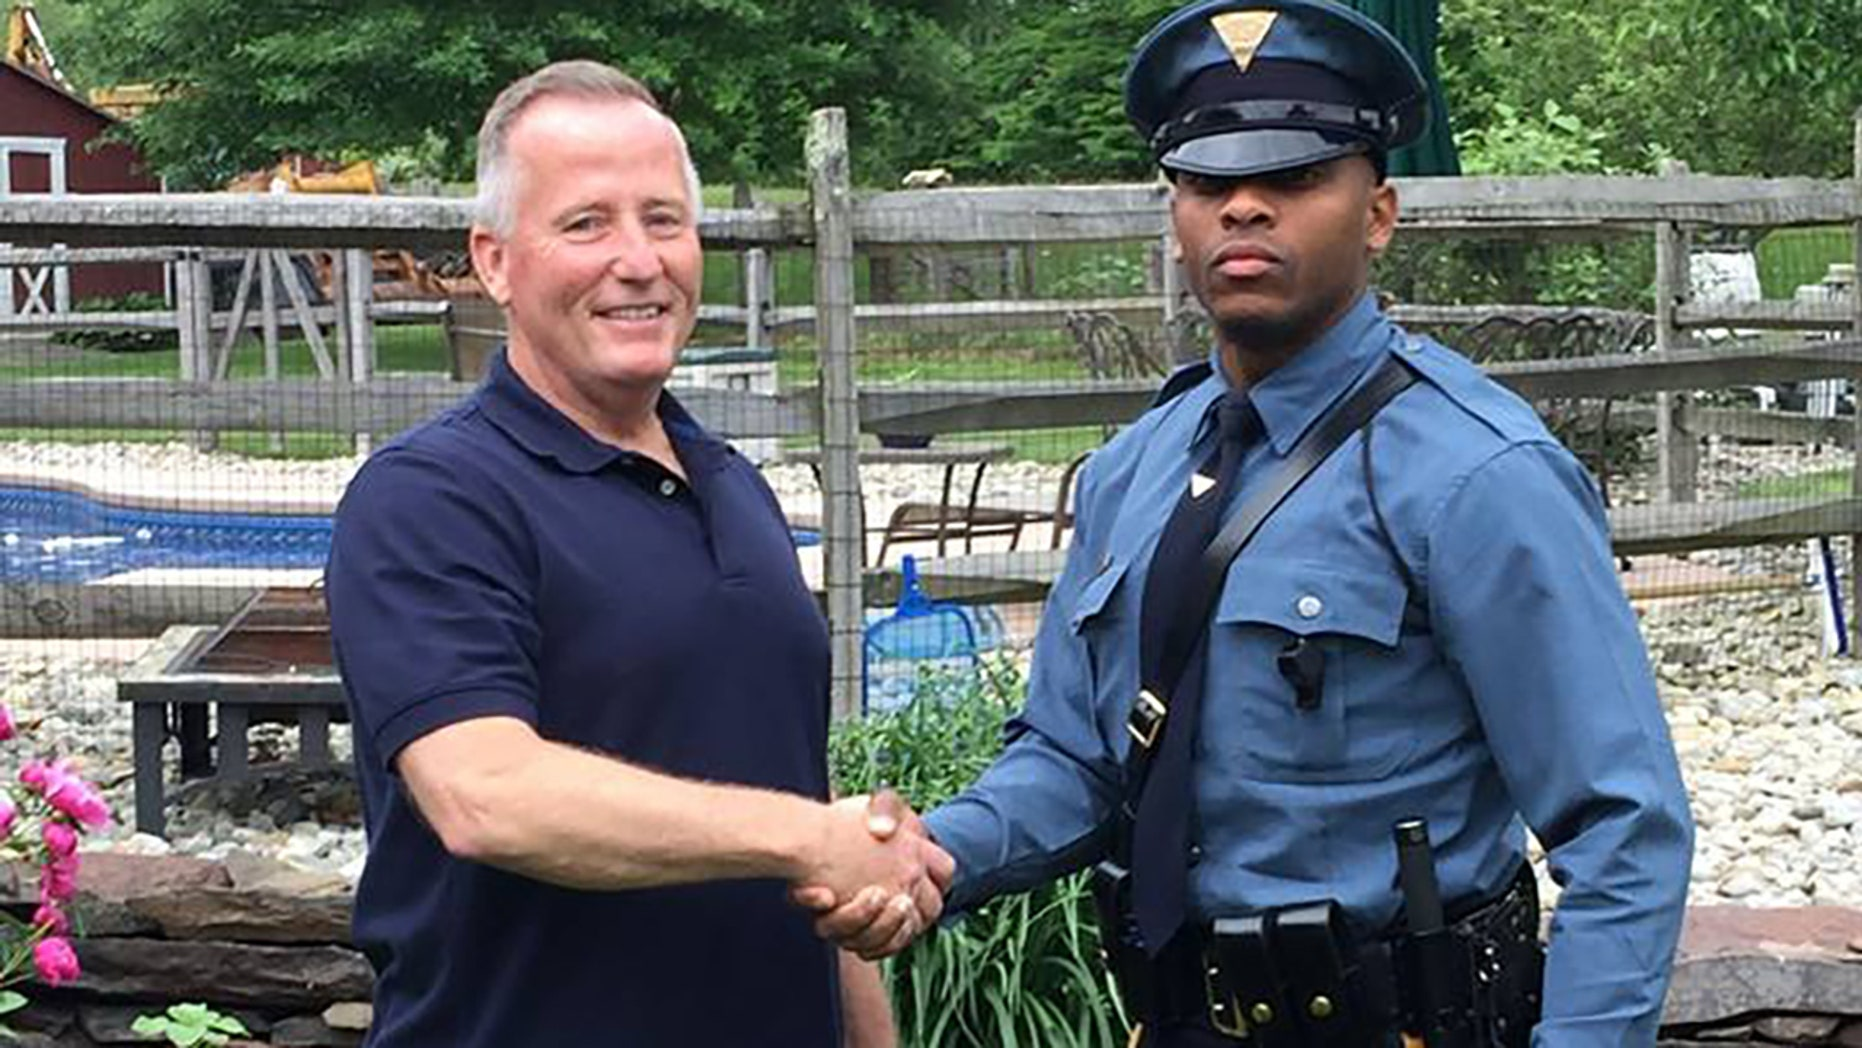 Retired New Jersey police officer Matthew Bailly (left) shaking hands with New Jersey State Trooper Michael Patterson (right) after realizing he helped deliver the trooper 27 years ago.